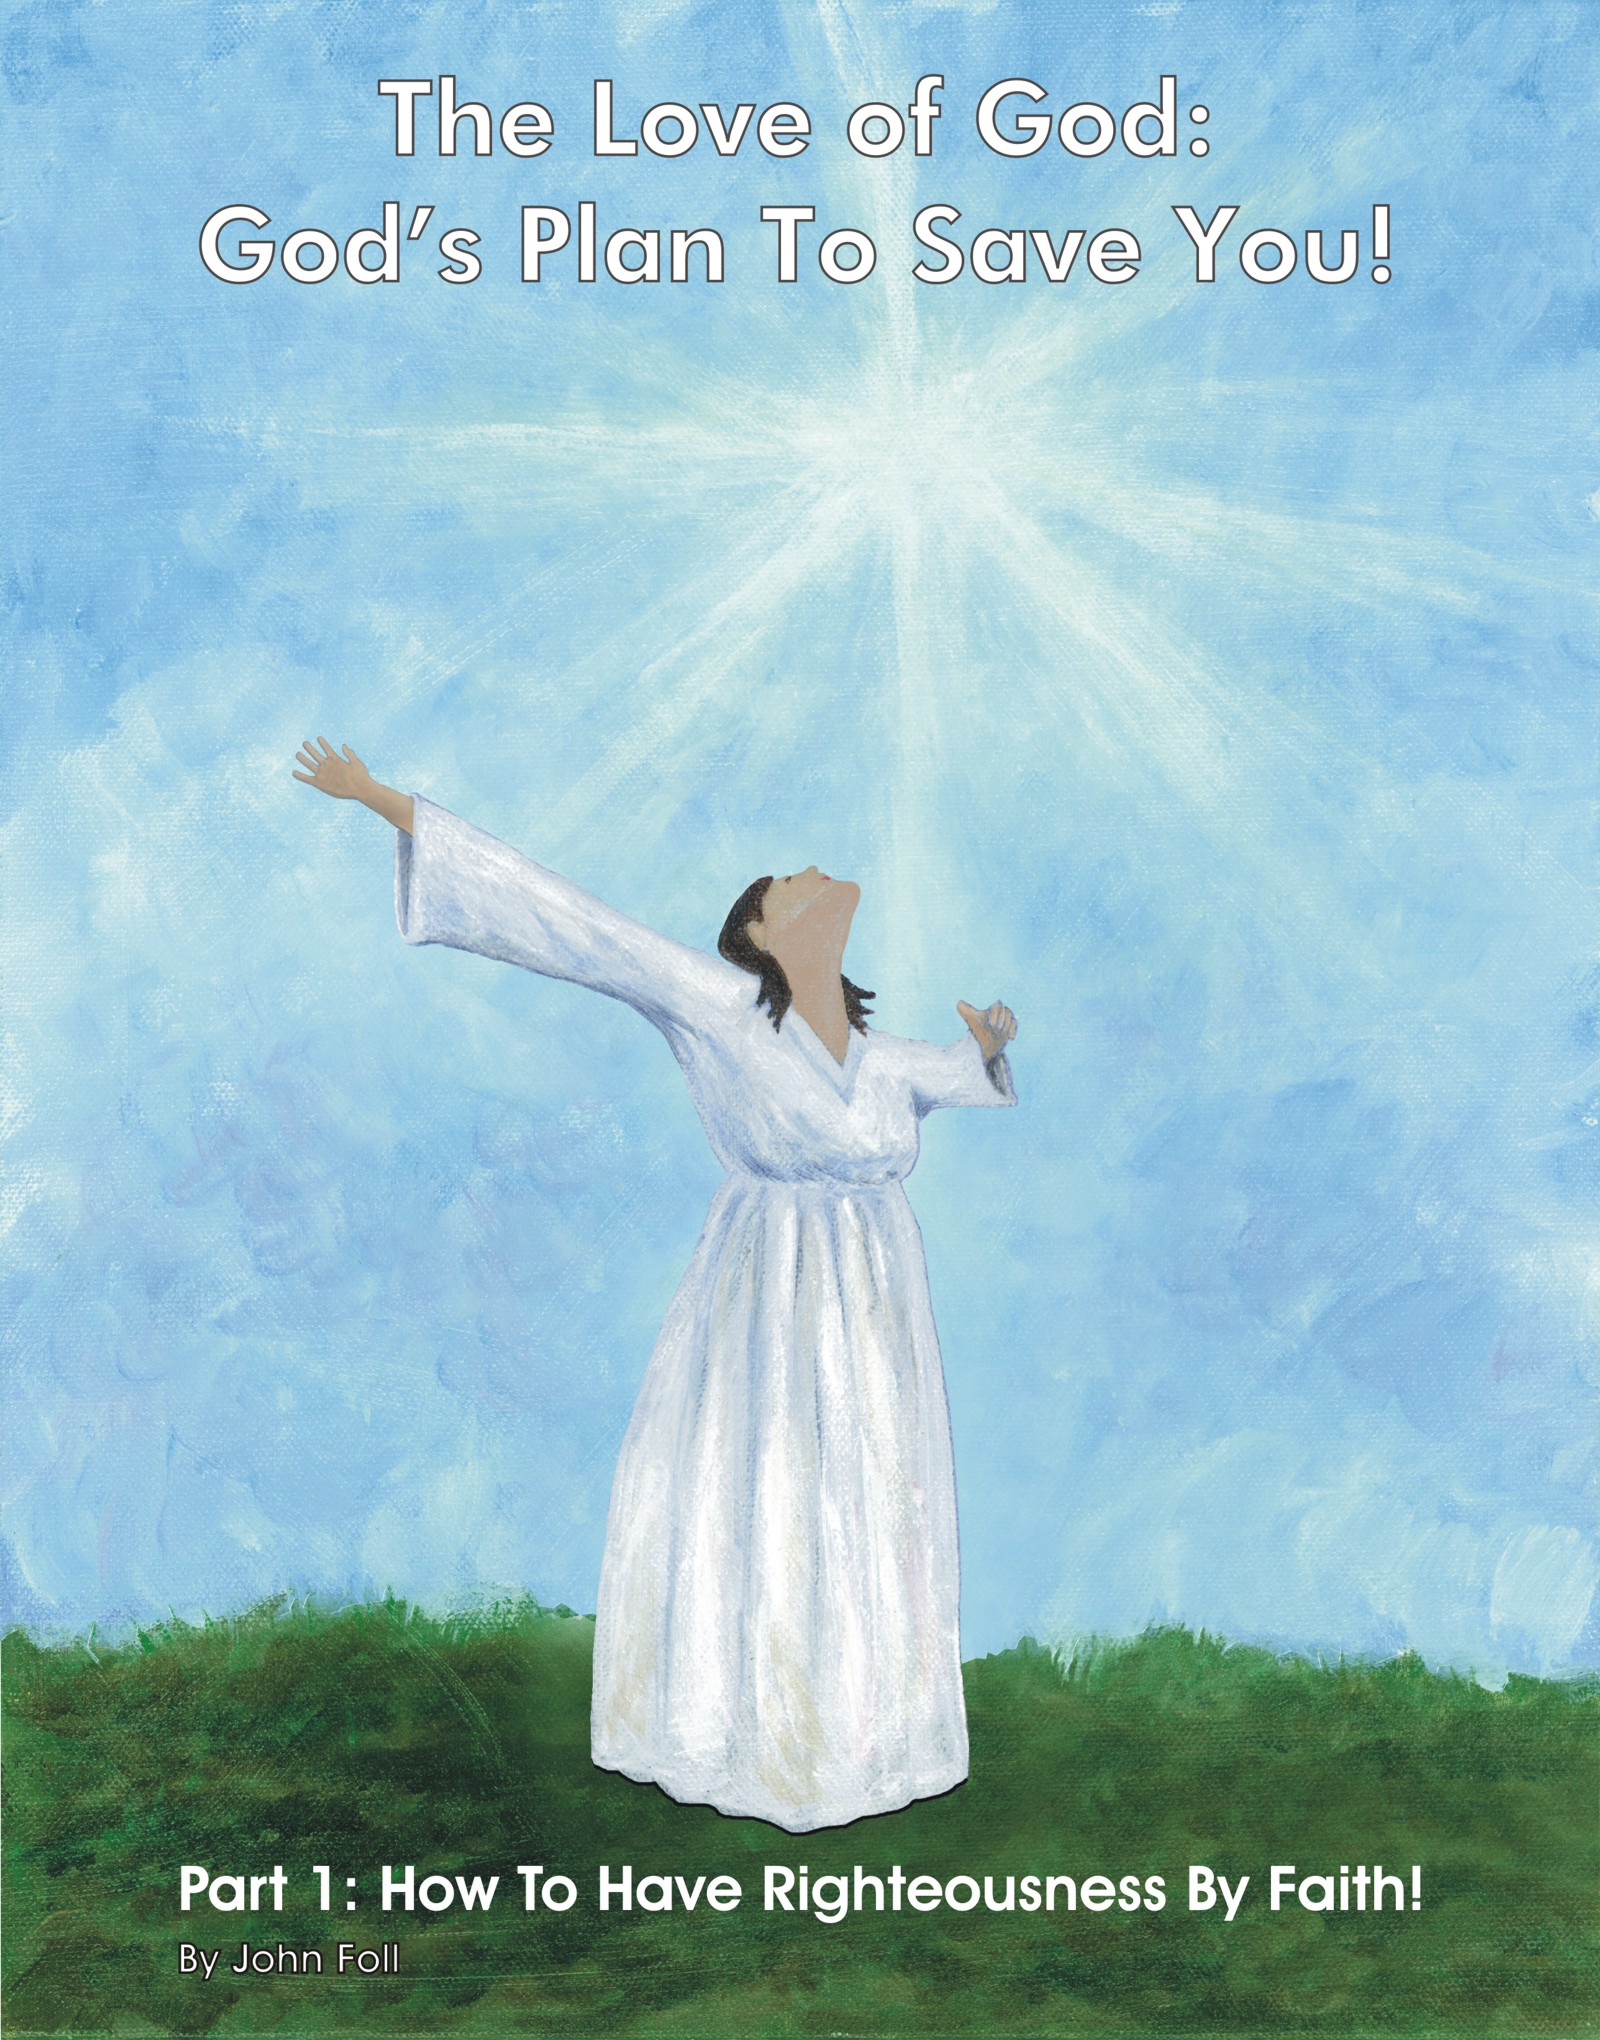 The Love of God God's Plan To Save You! Part 1